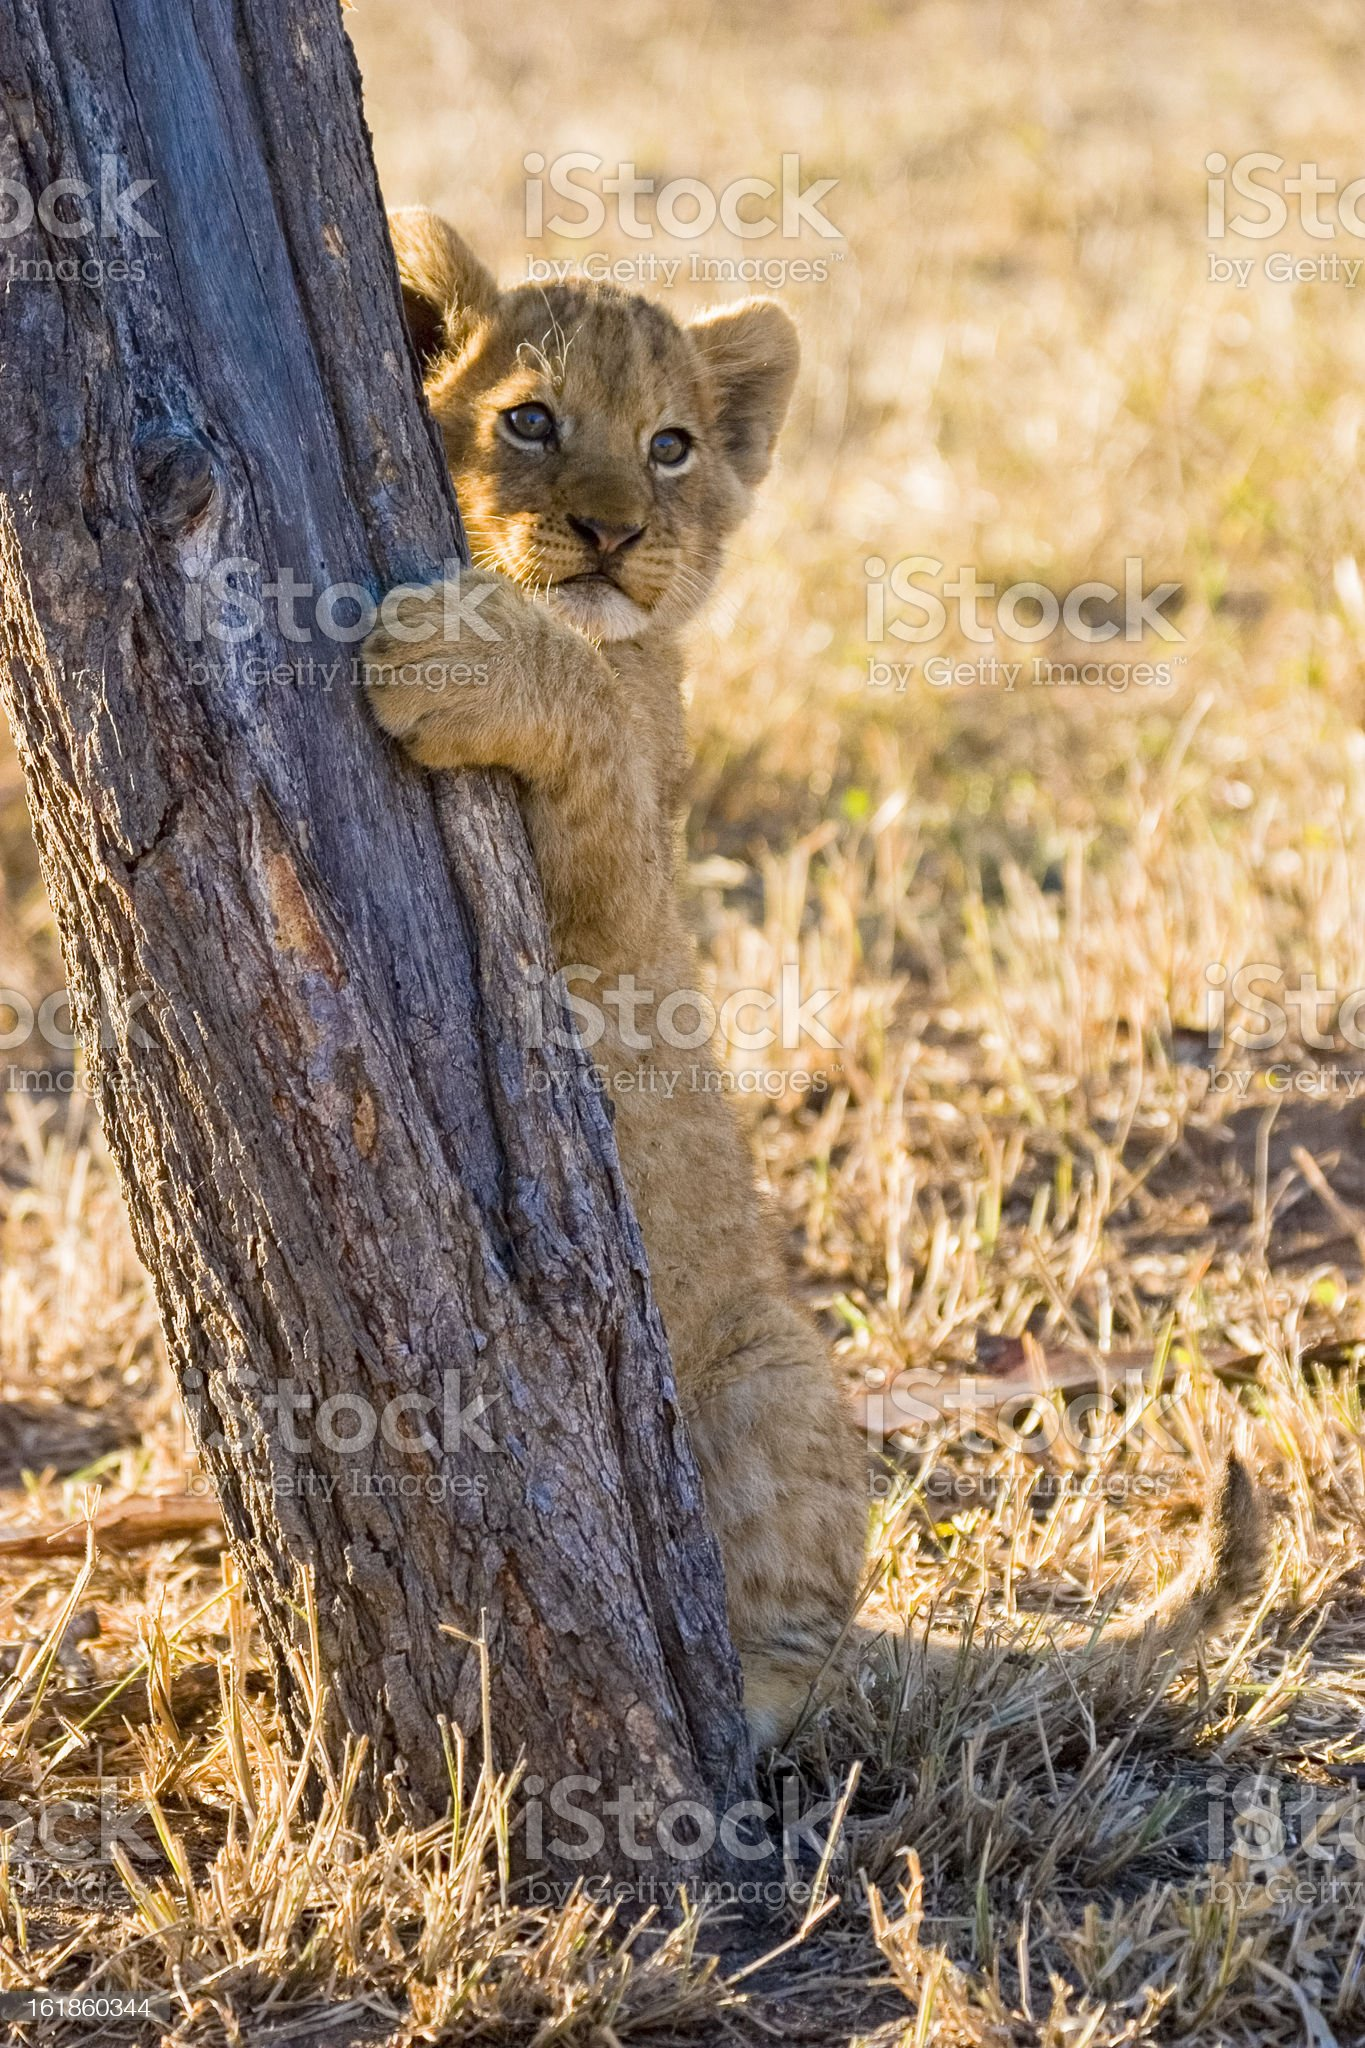 Lion cub, Mpumalanga Province, South Africa royalty-free stock photo